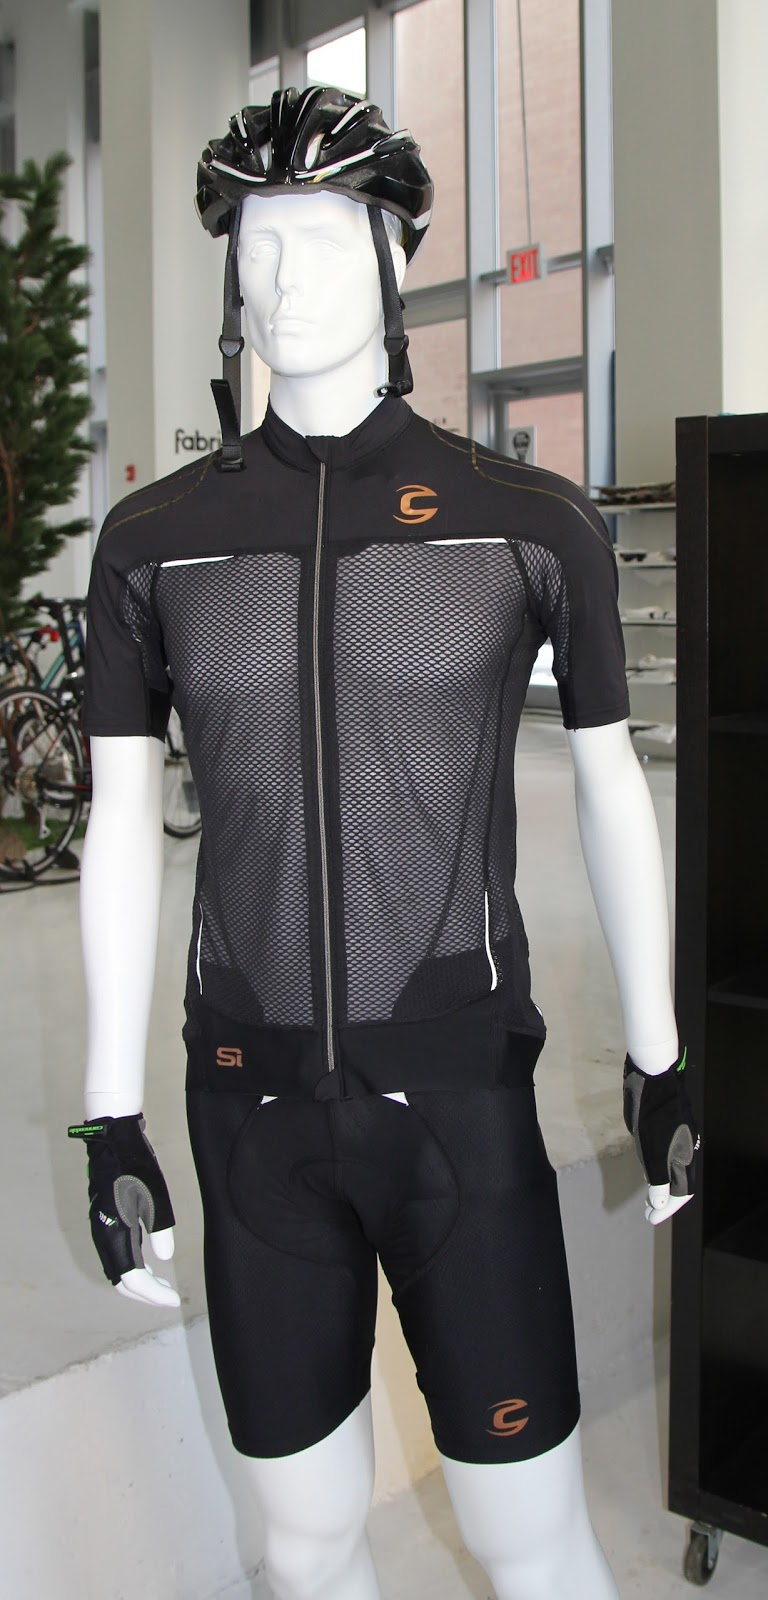 8d49dd73e Elite Nano Short Sleeve  200-high performance road jersey w  full mesh  front panel for superior breathability